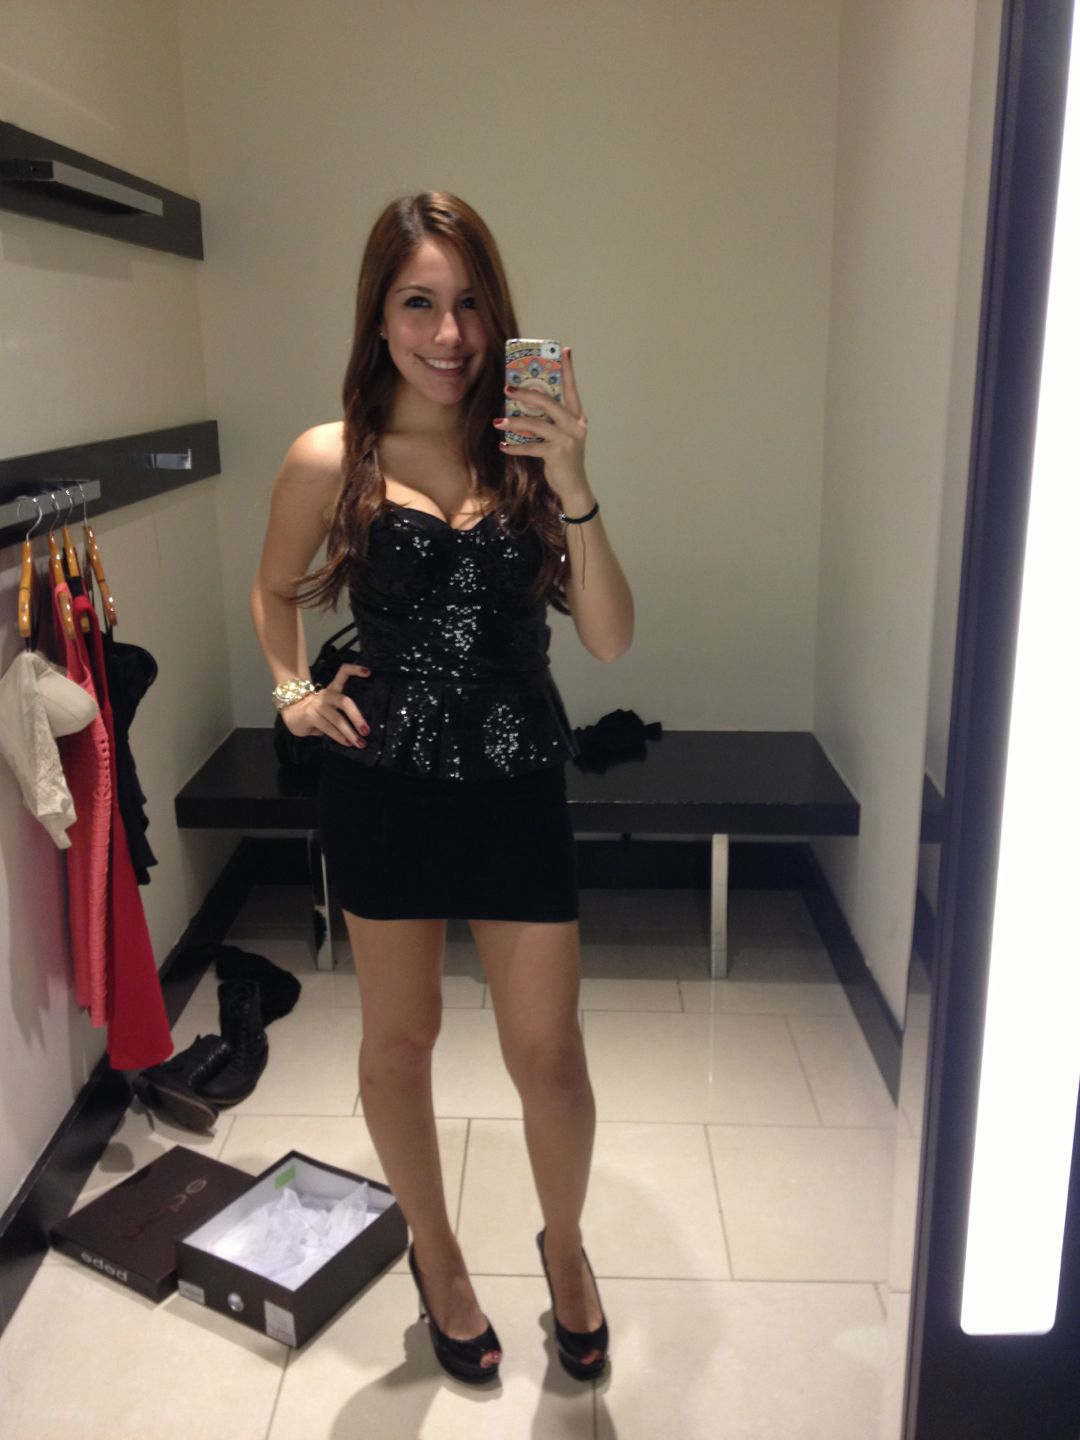 Super hot dressing room cam at camsoda catching teens getting dressed